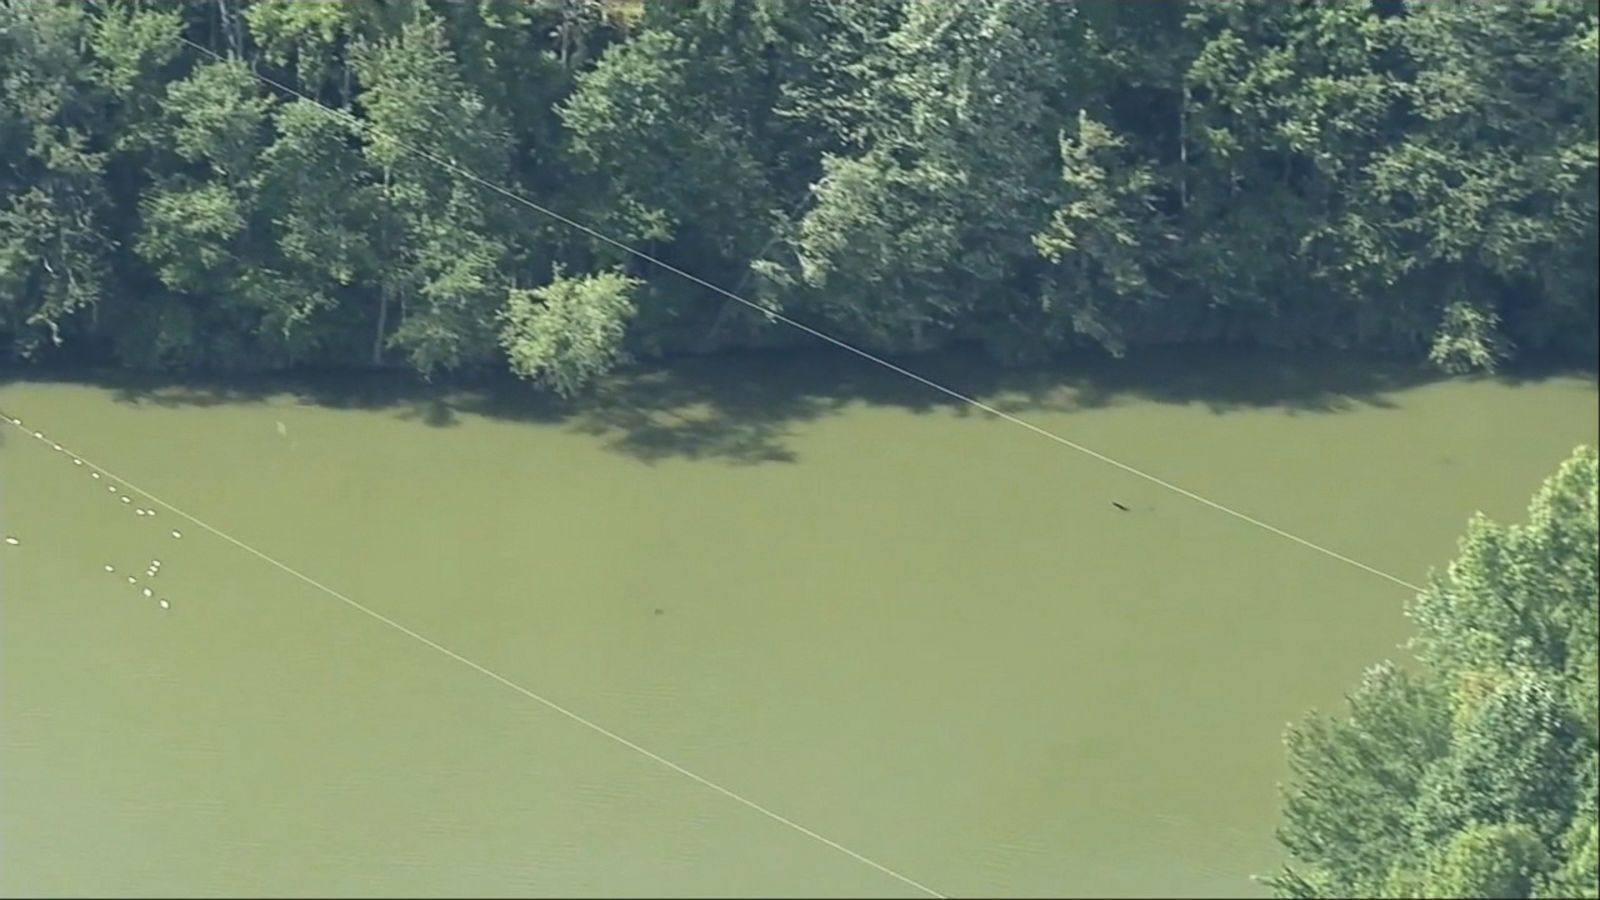 A 59-year-old woman has died after falling approximately 40 feet from a zip line at the Lums Pond State Park in Delaware.